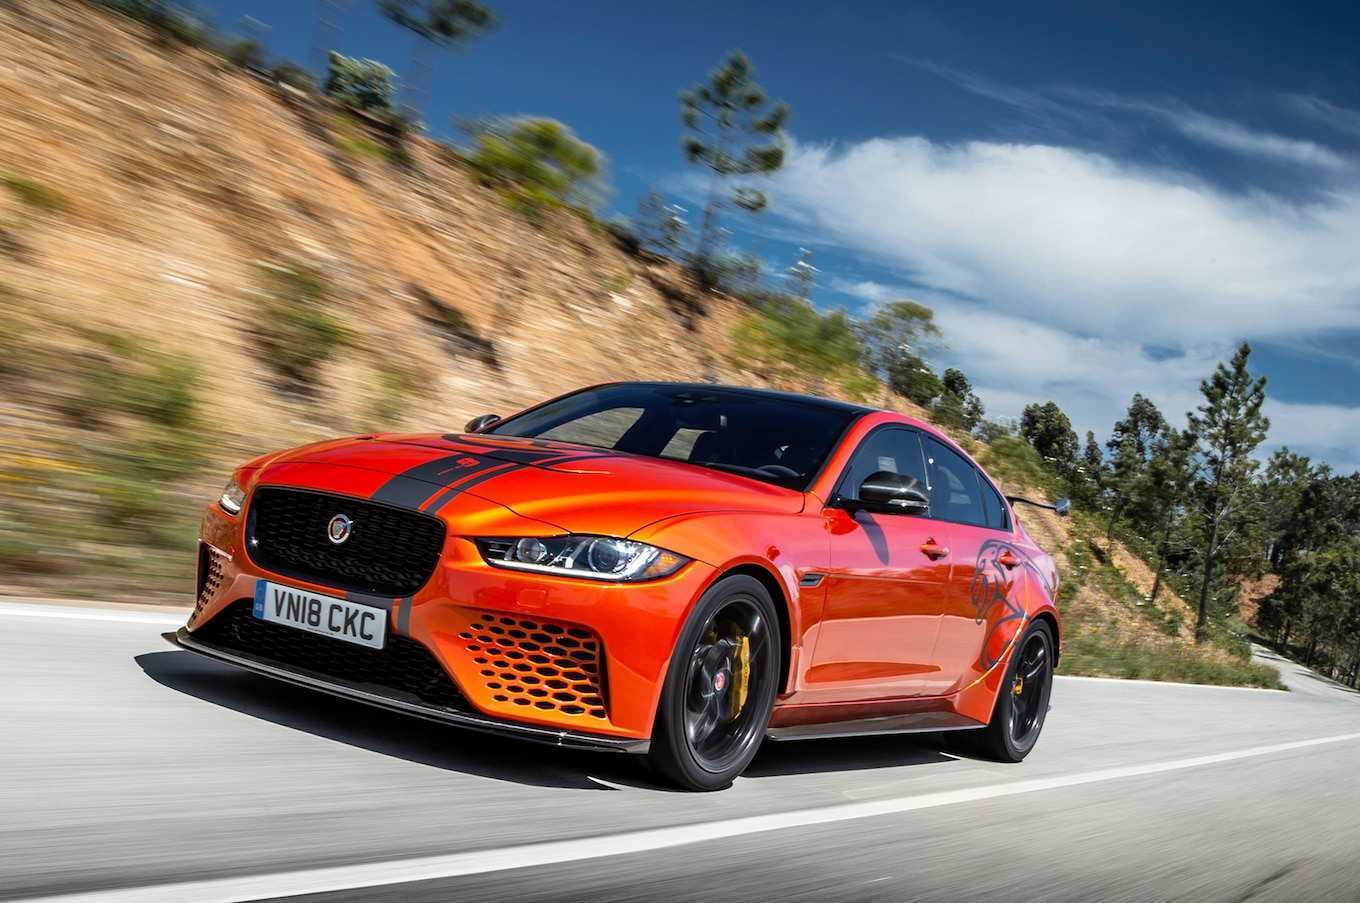 97 A 2019 Jaguar Xe Sedan Redesign and Concept